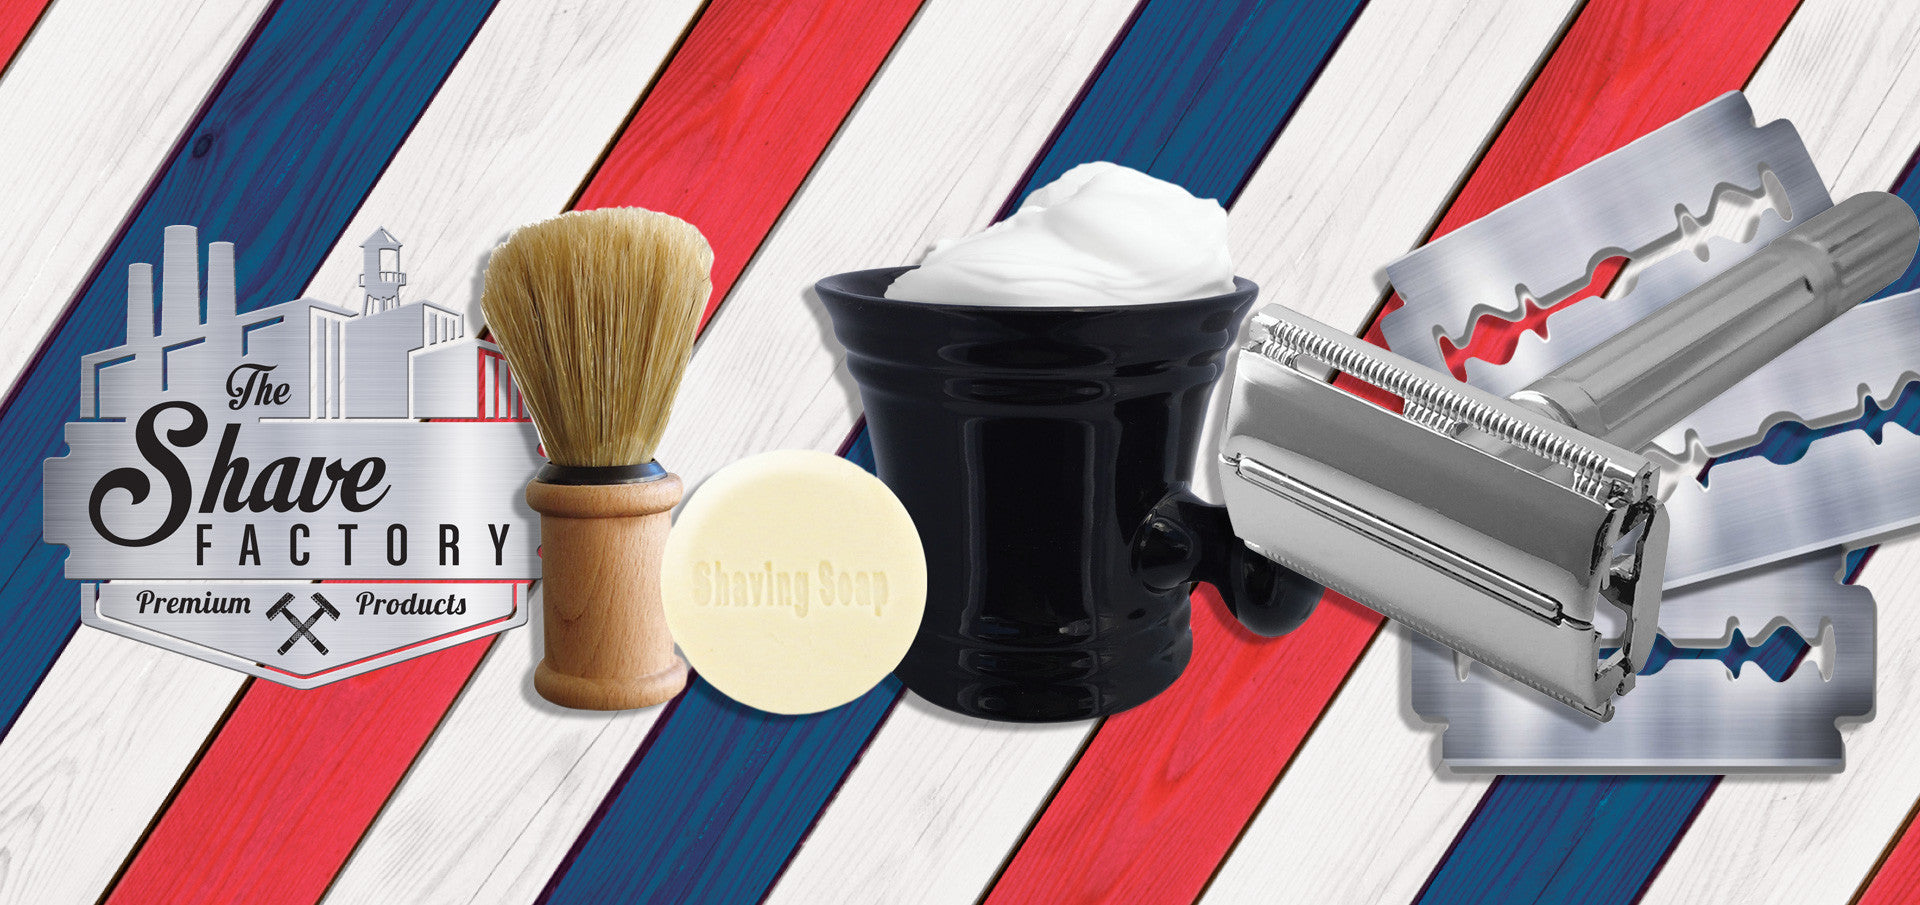 The Shave Factory shaving products